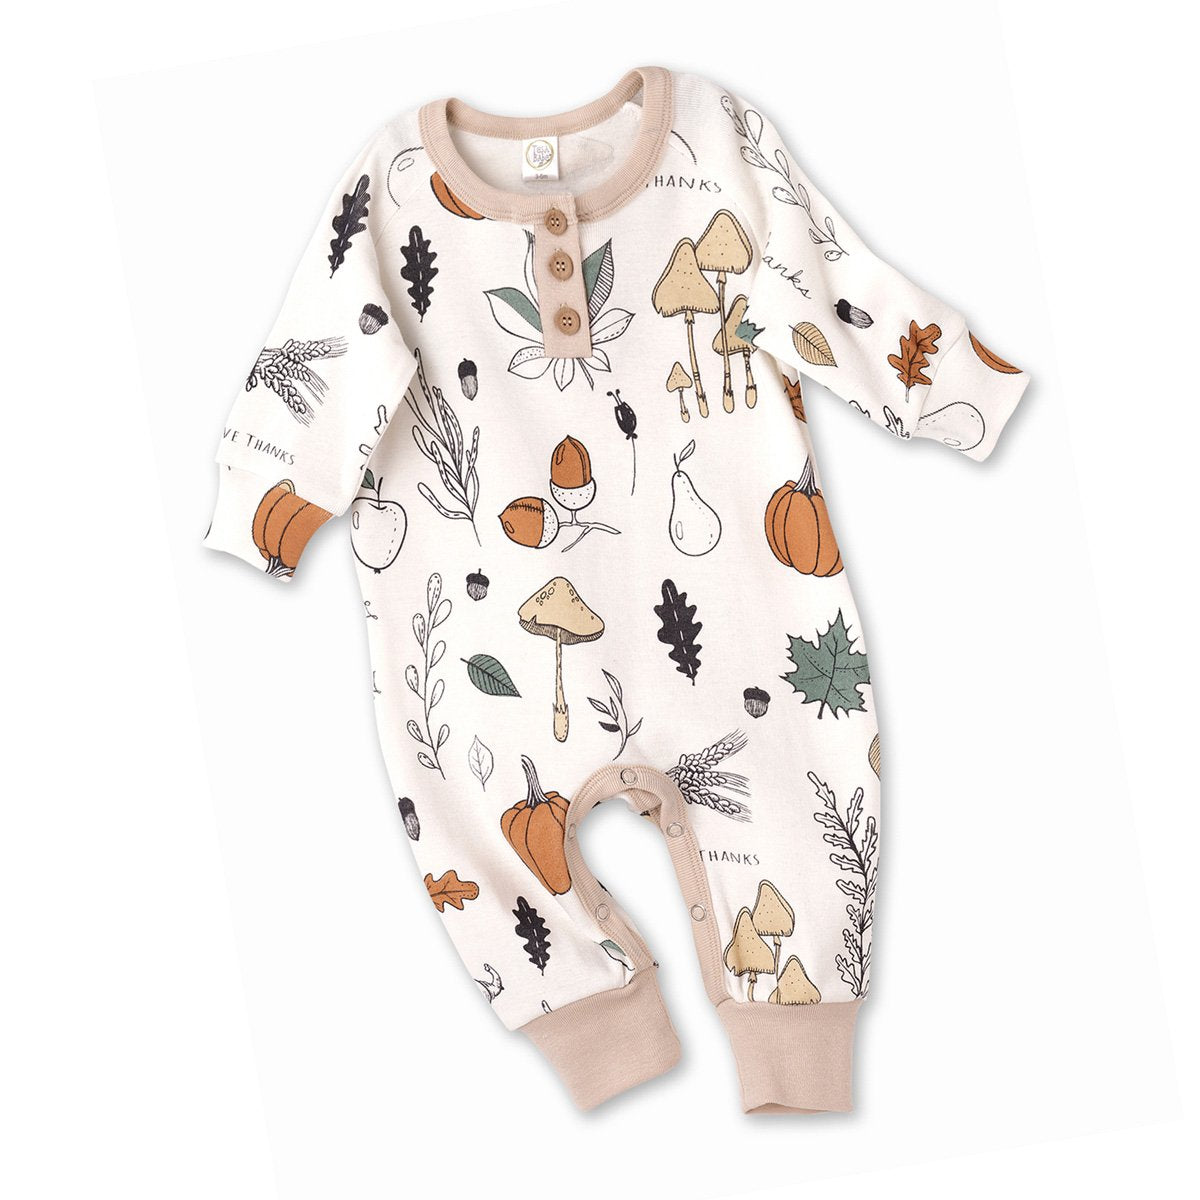 Give Thanks Henley Romper